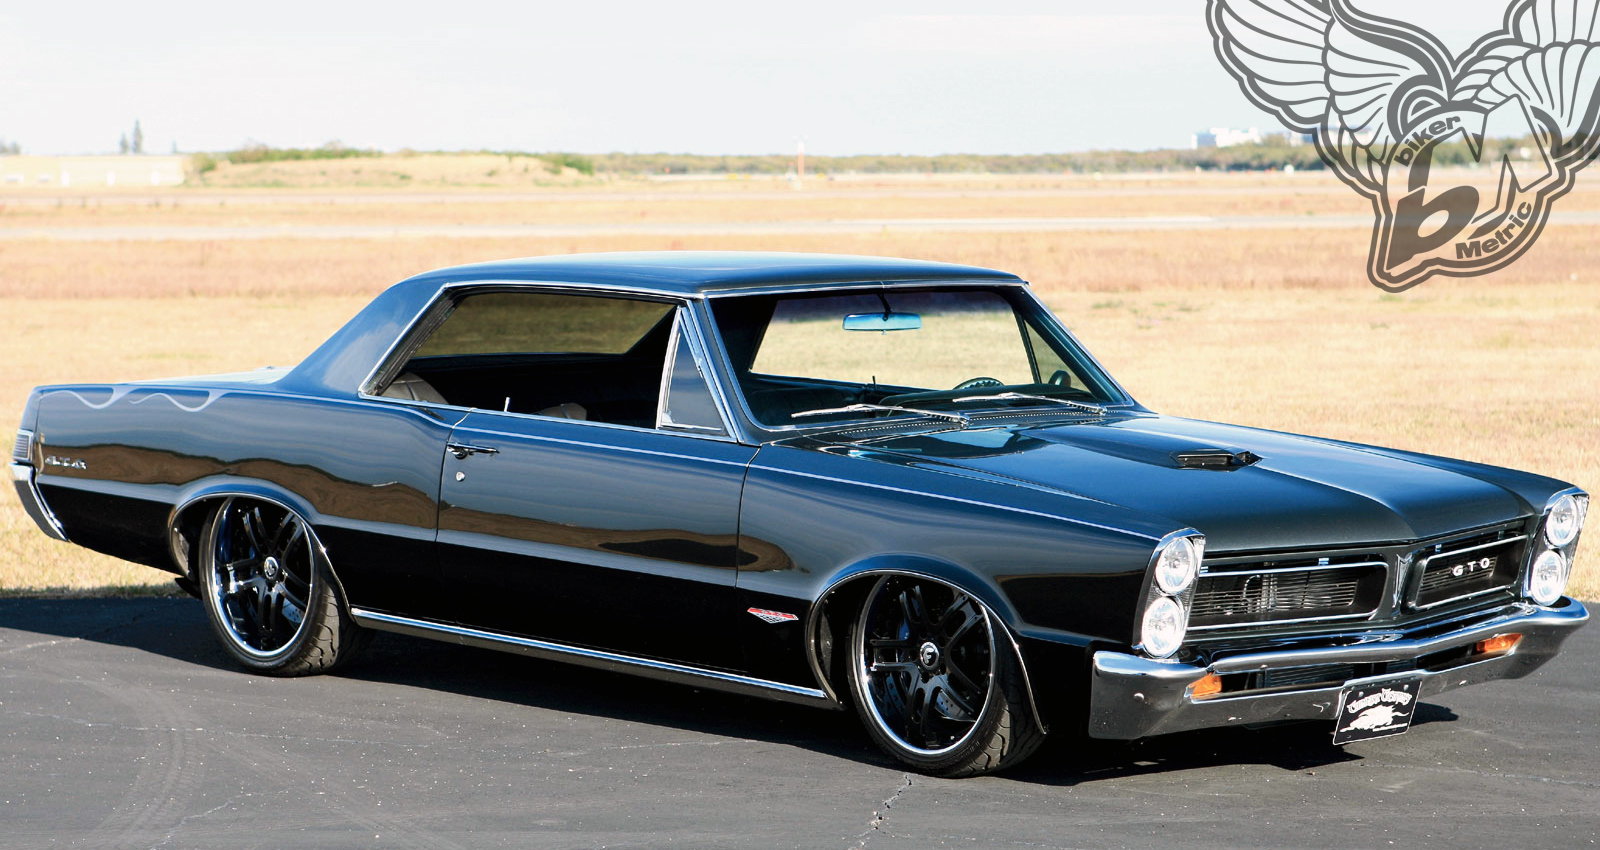 the first muscle car | pontiac gto - bikerMetric